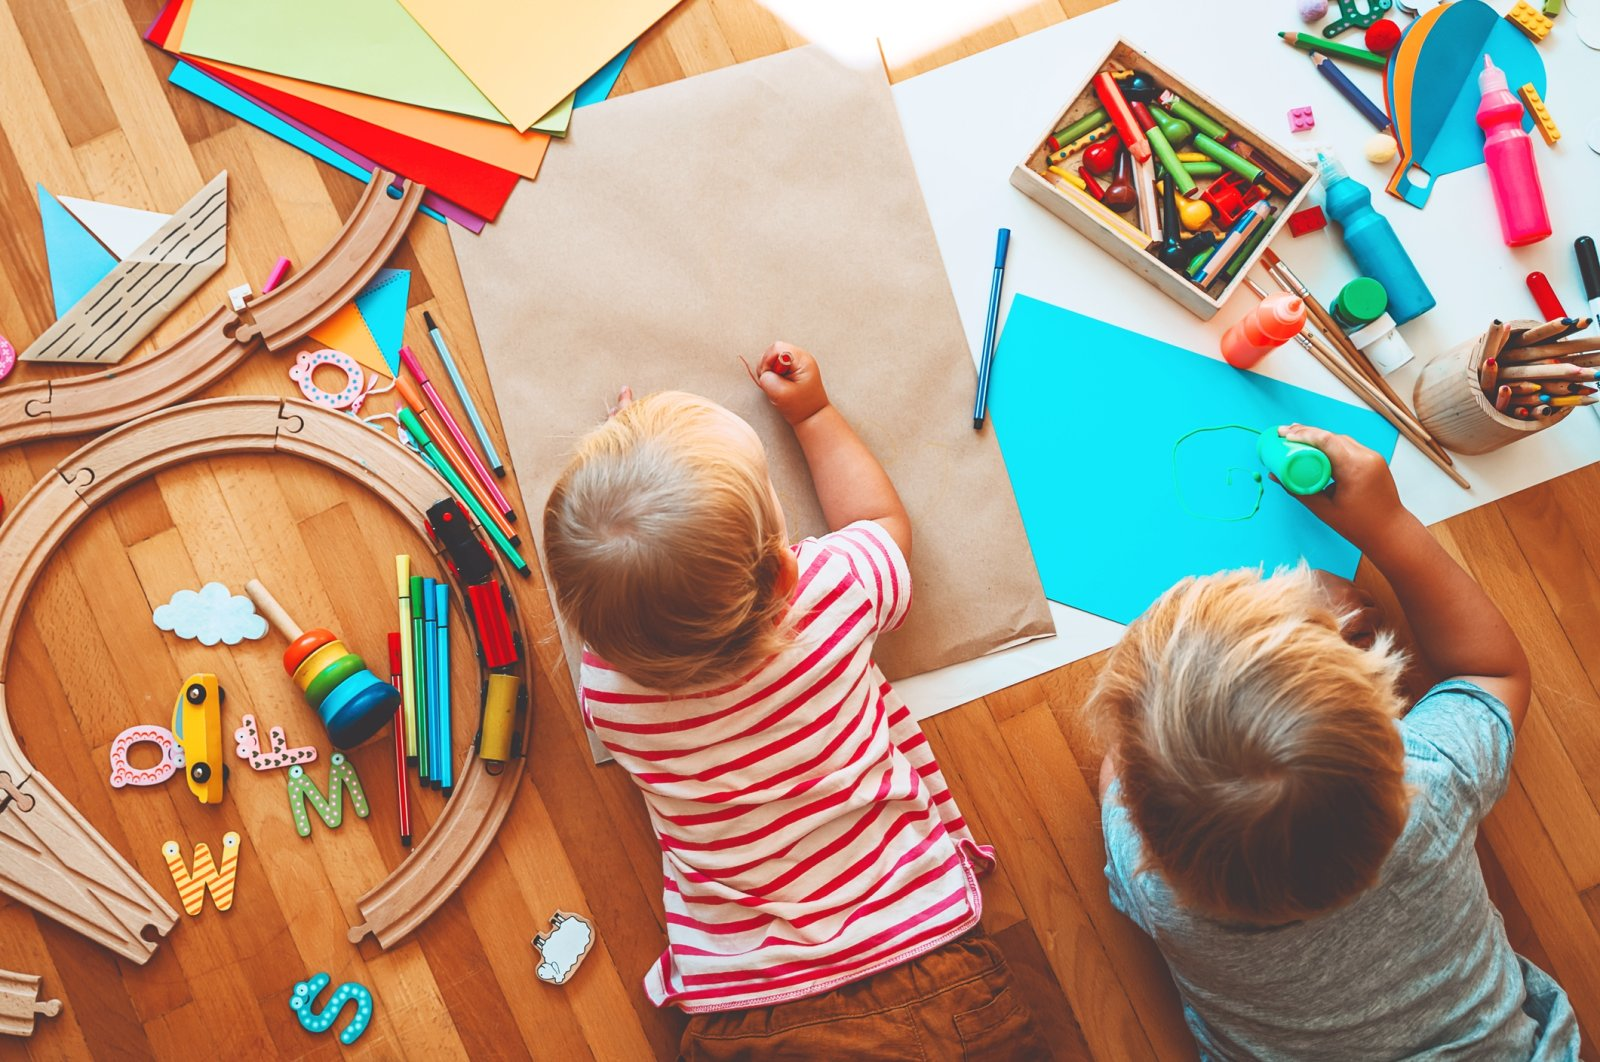 Children will design a poster expressing a slogan of their thoughts on freedom at the workshop. (iStock Photo)